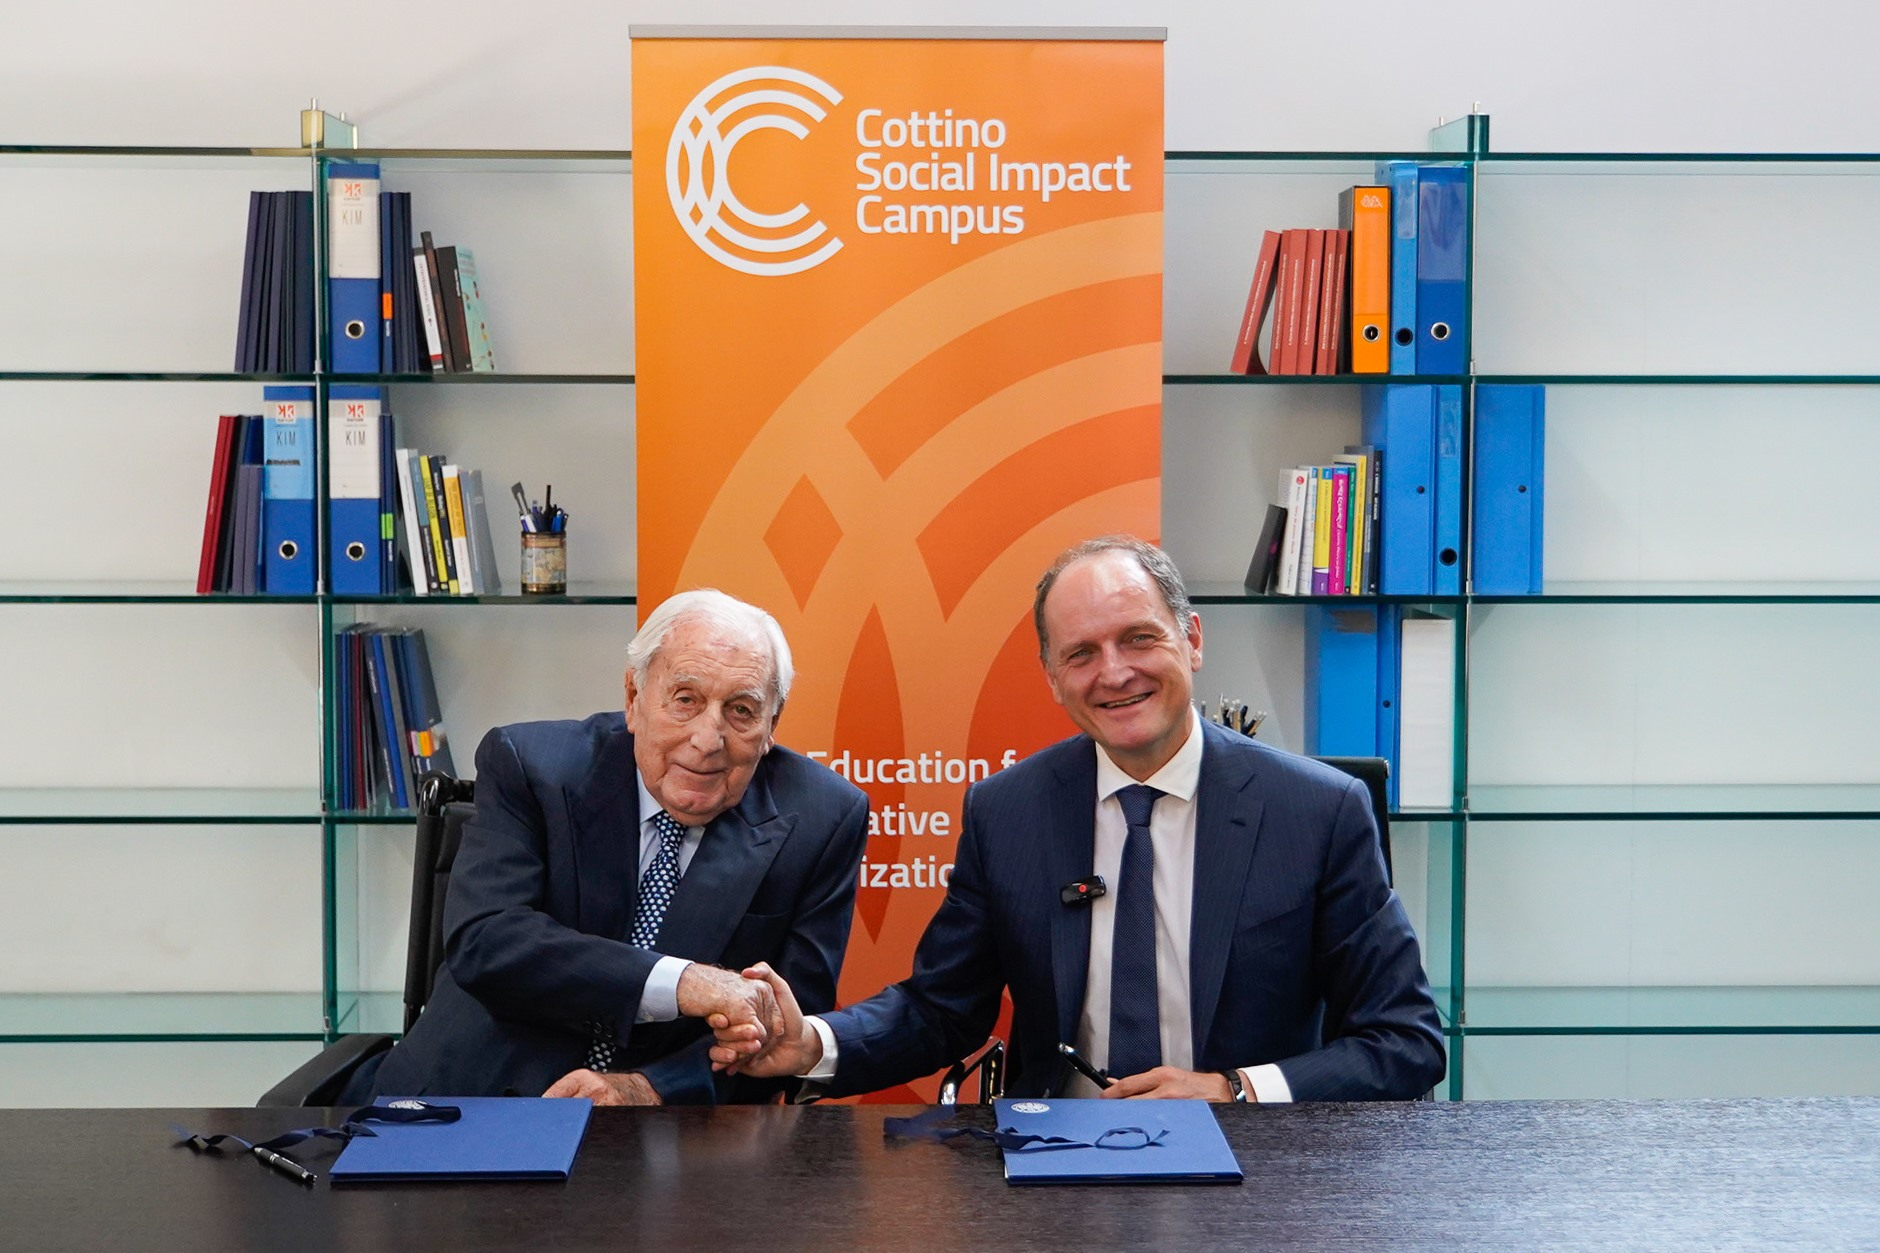 The new agreement between Turin Polytechnic and Cottino Foundation